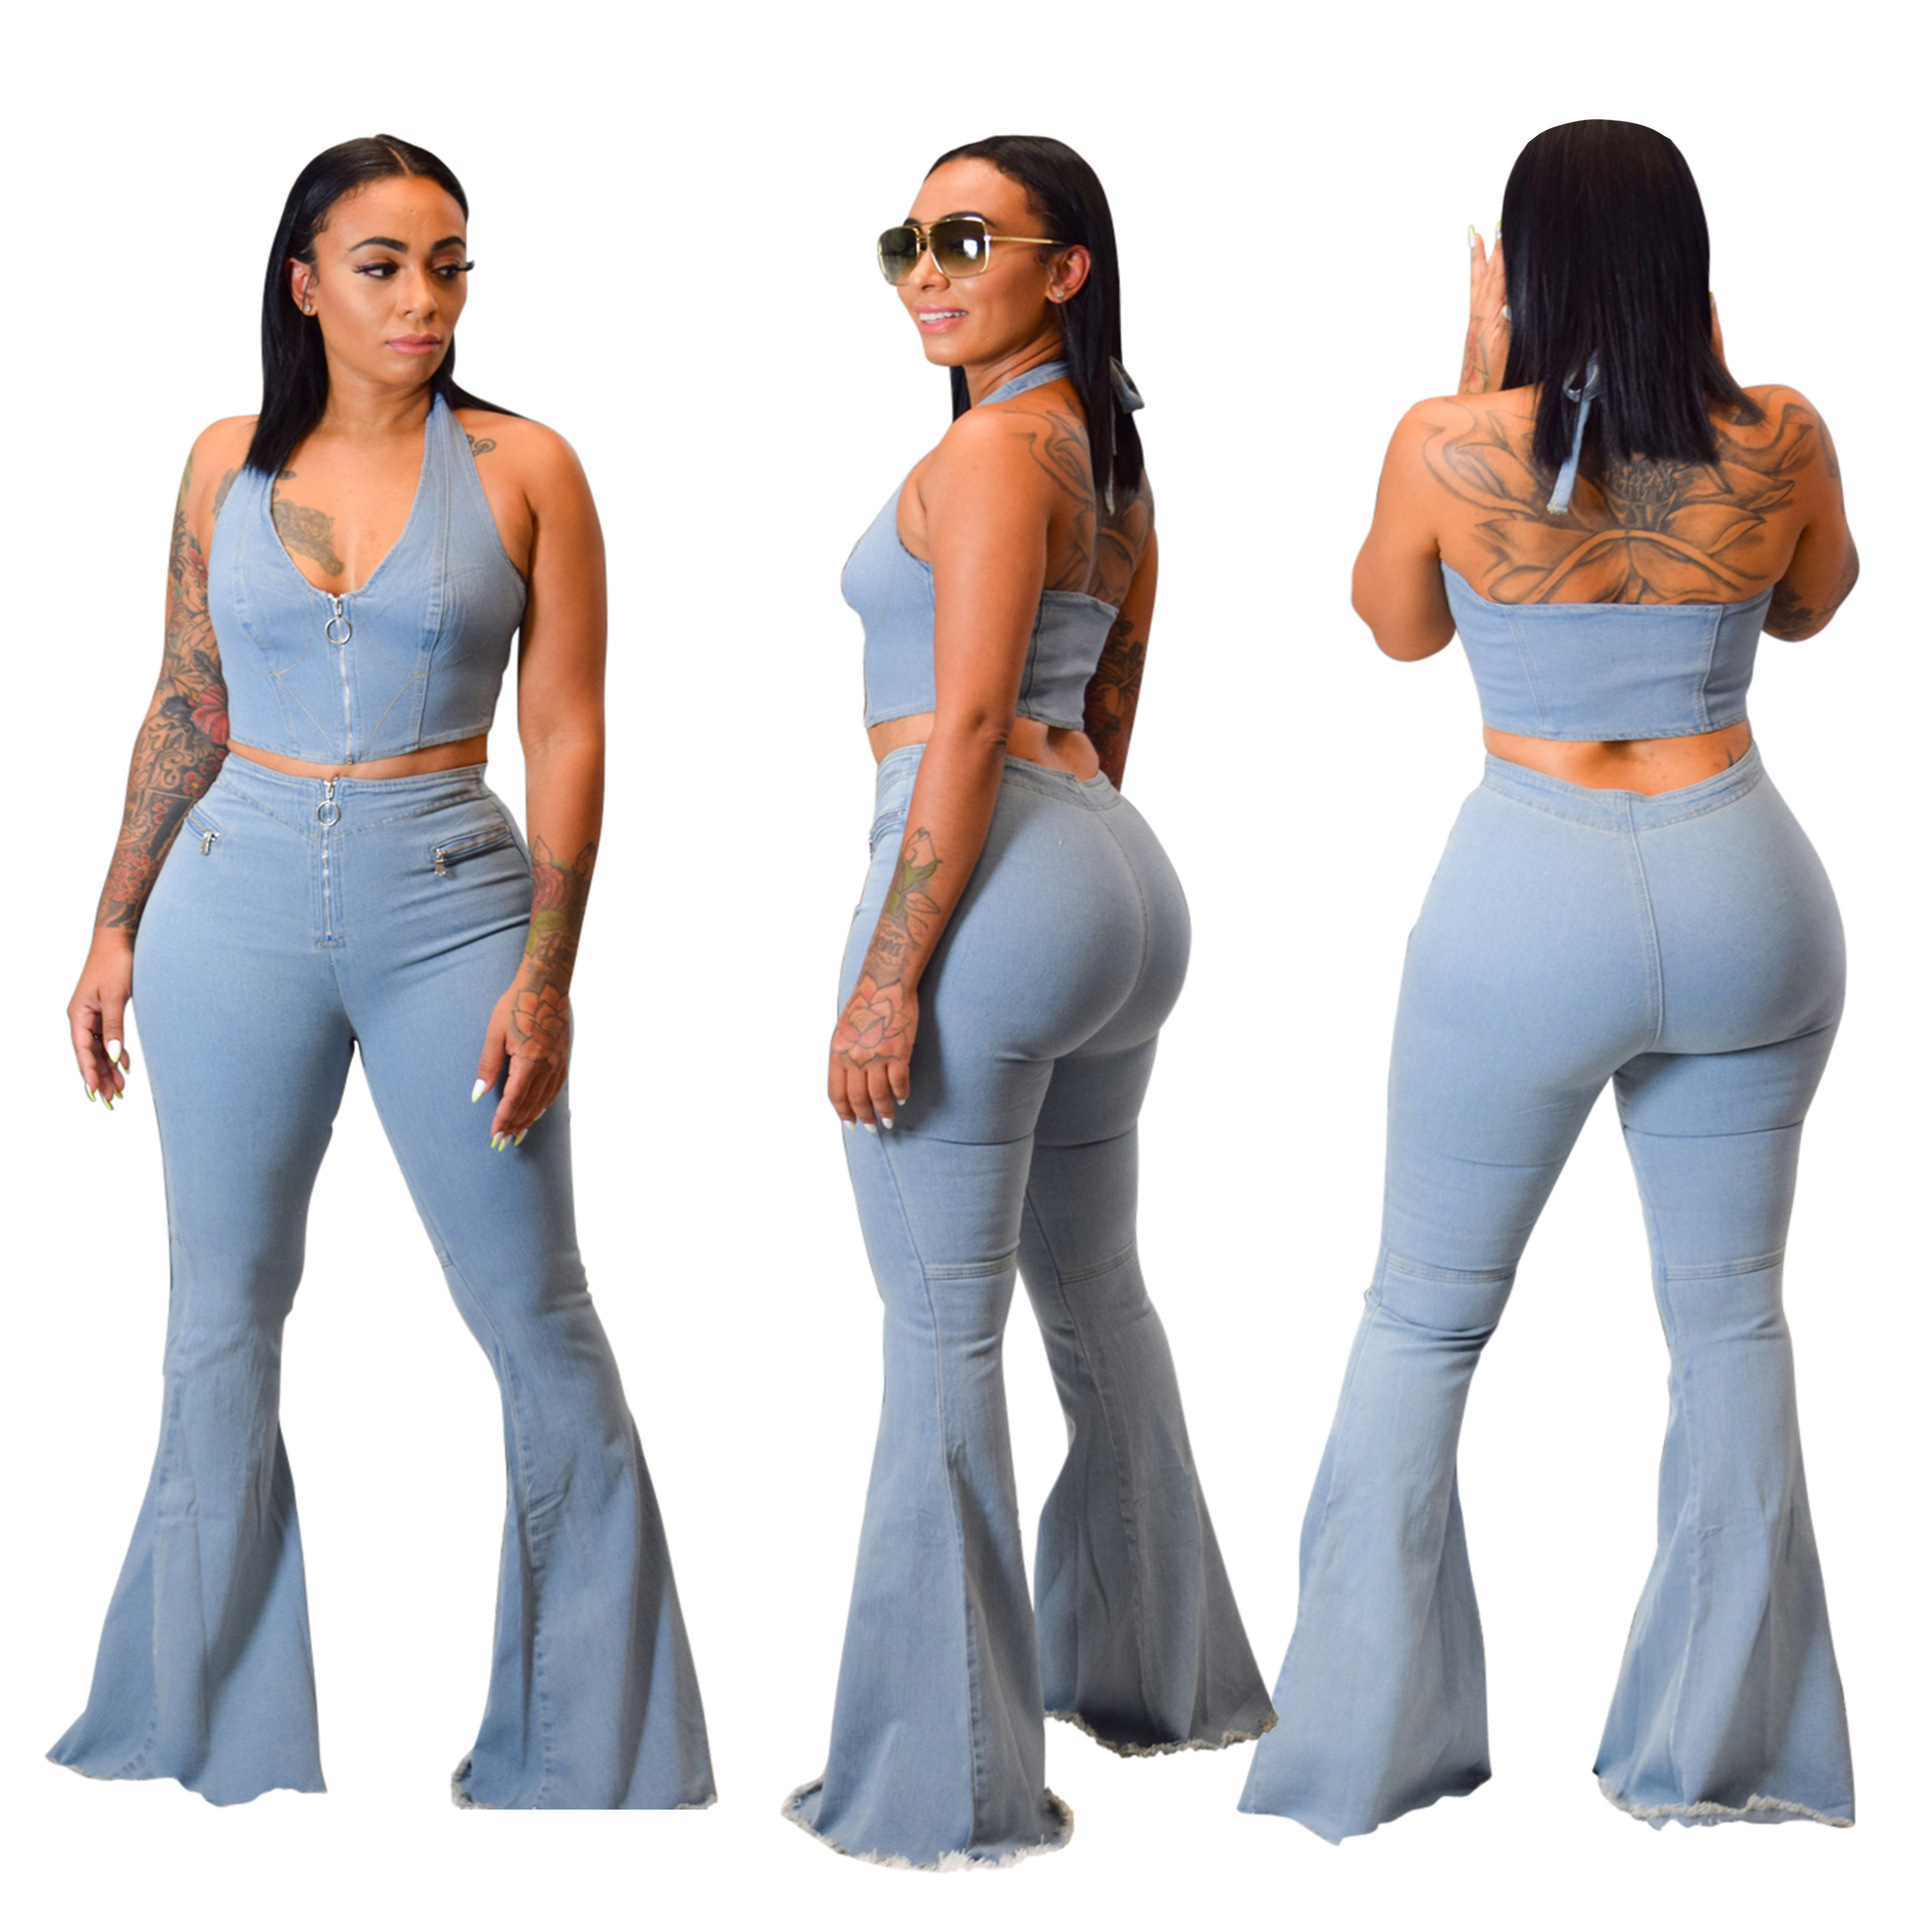 Fashion Women Light Blue Washed Flare Jeans Sets Sexy Halter Neck Sleeveless Top Bell Bottom Jeans Two Pieces Suits New Arrivals